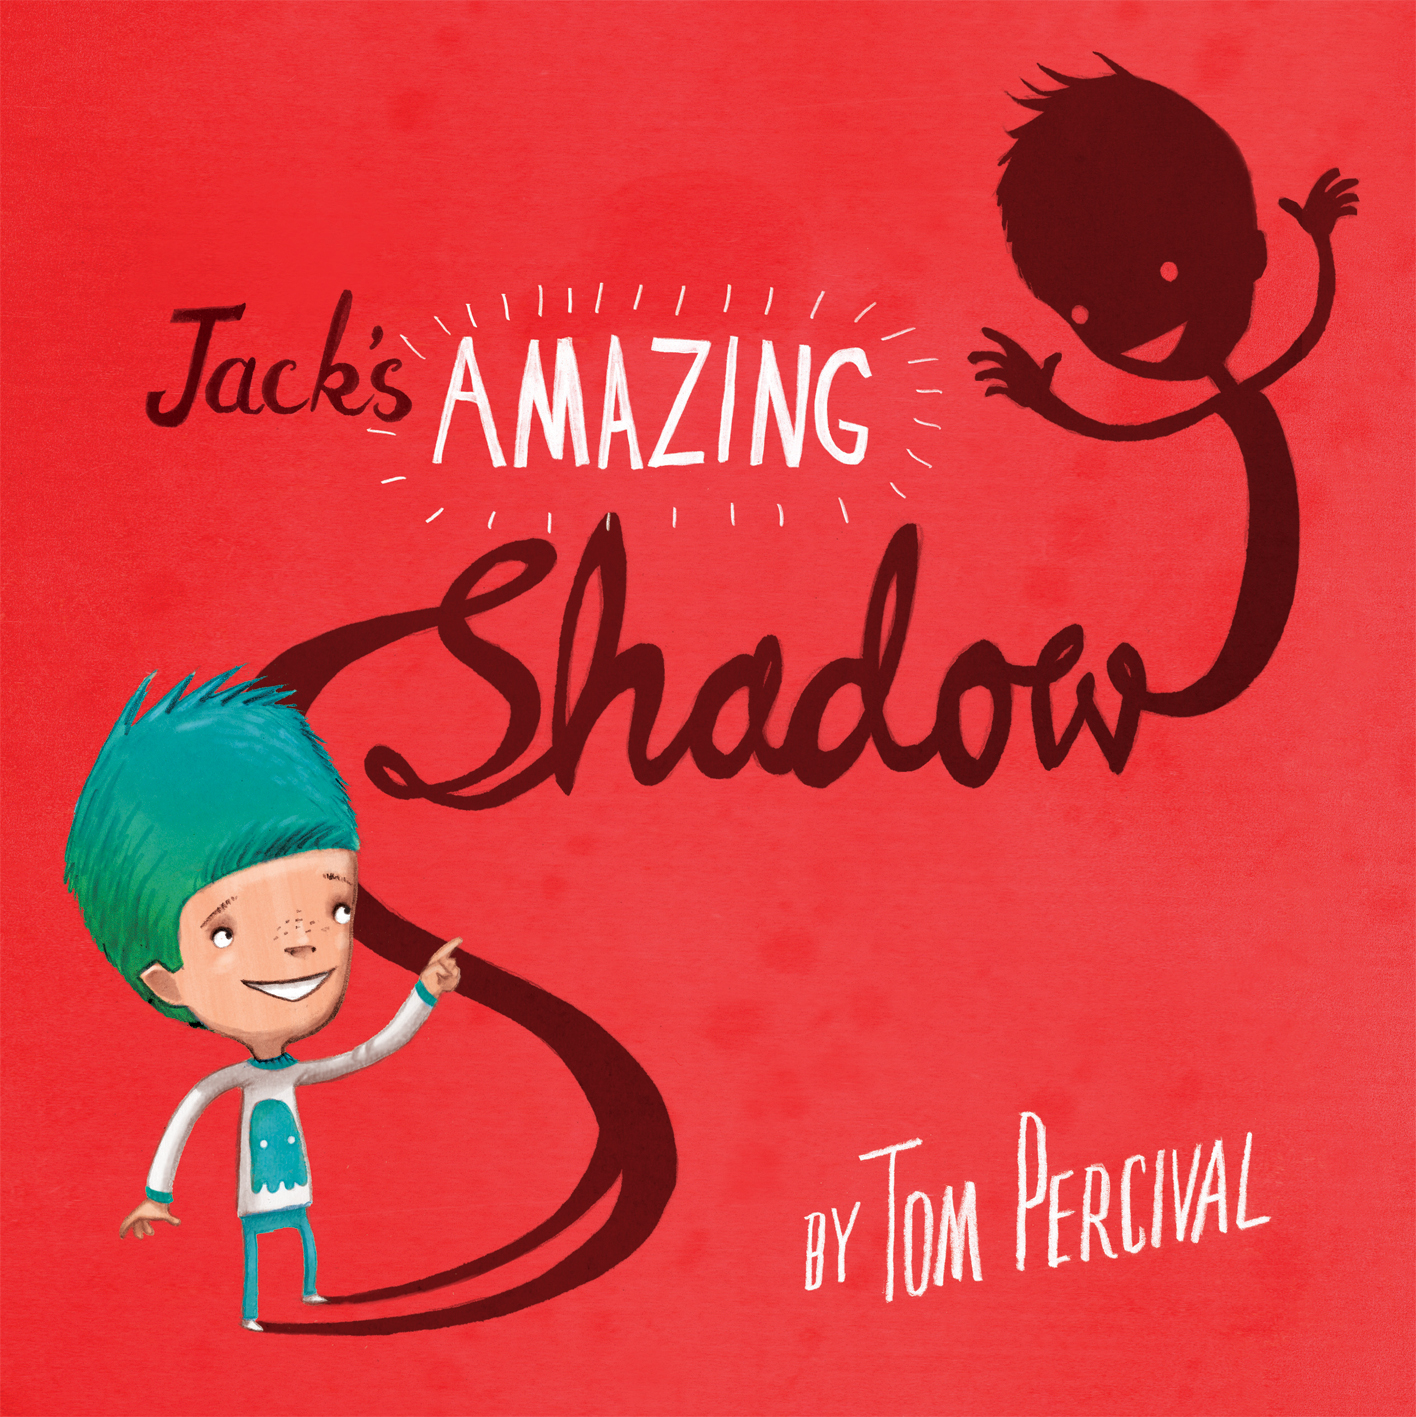 Jack's Amazing Shadow